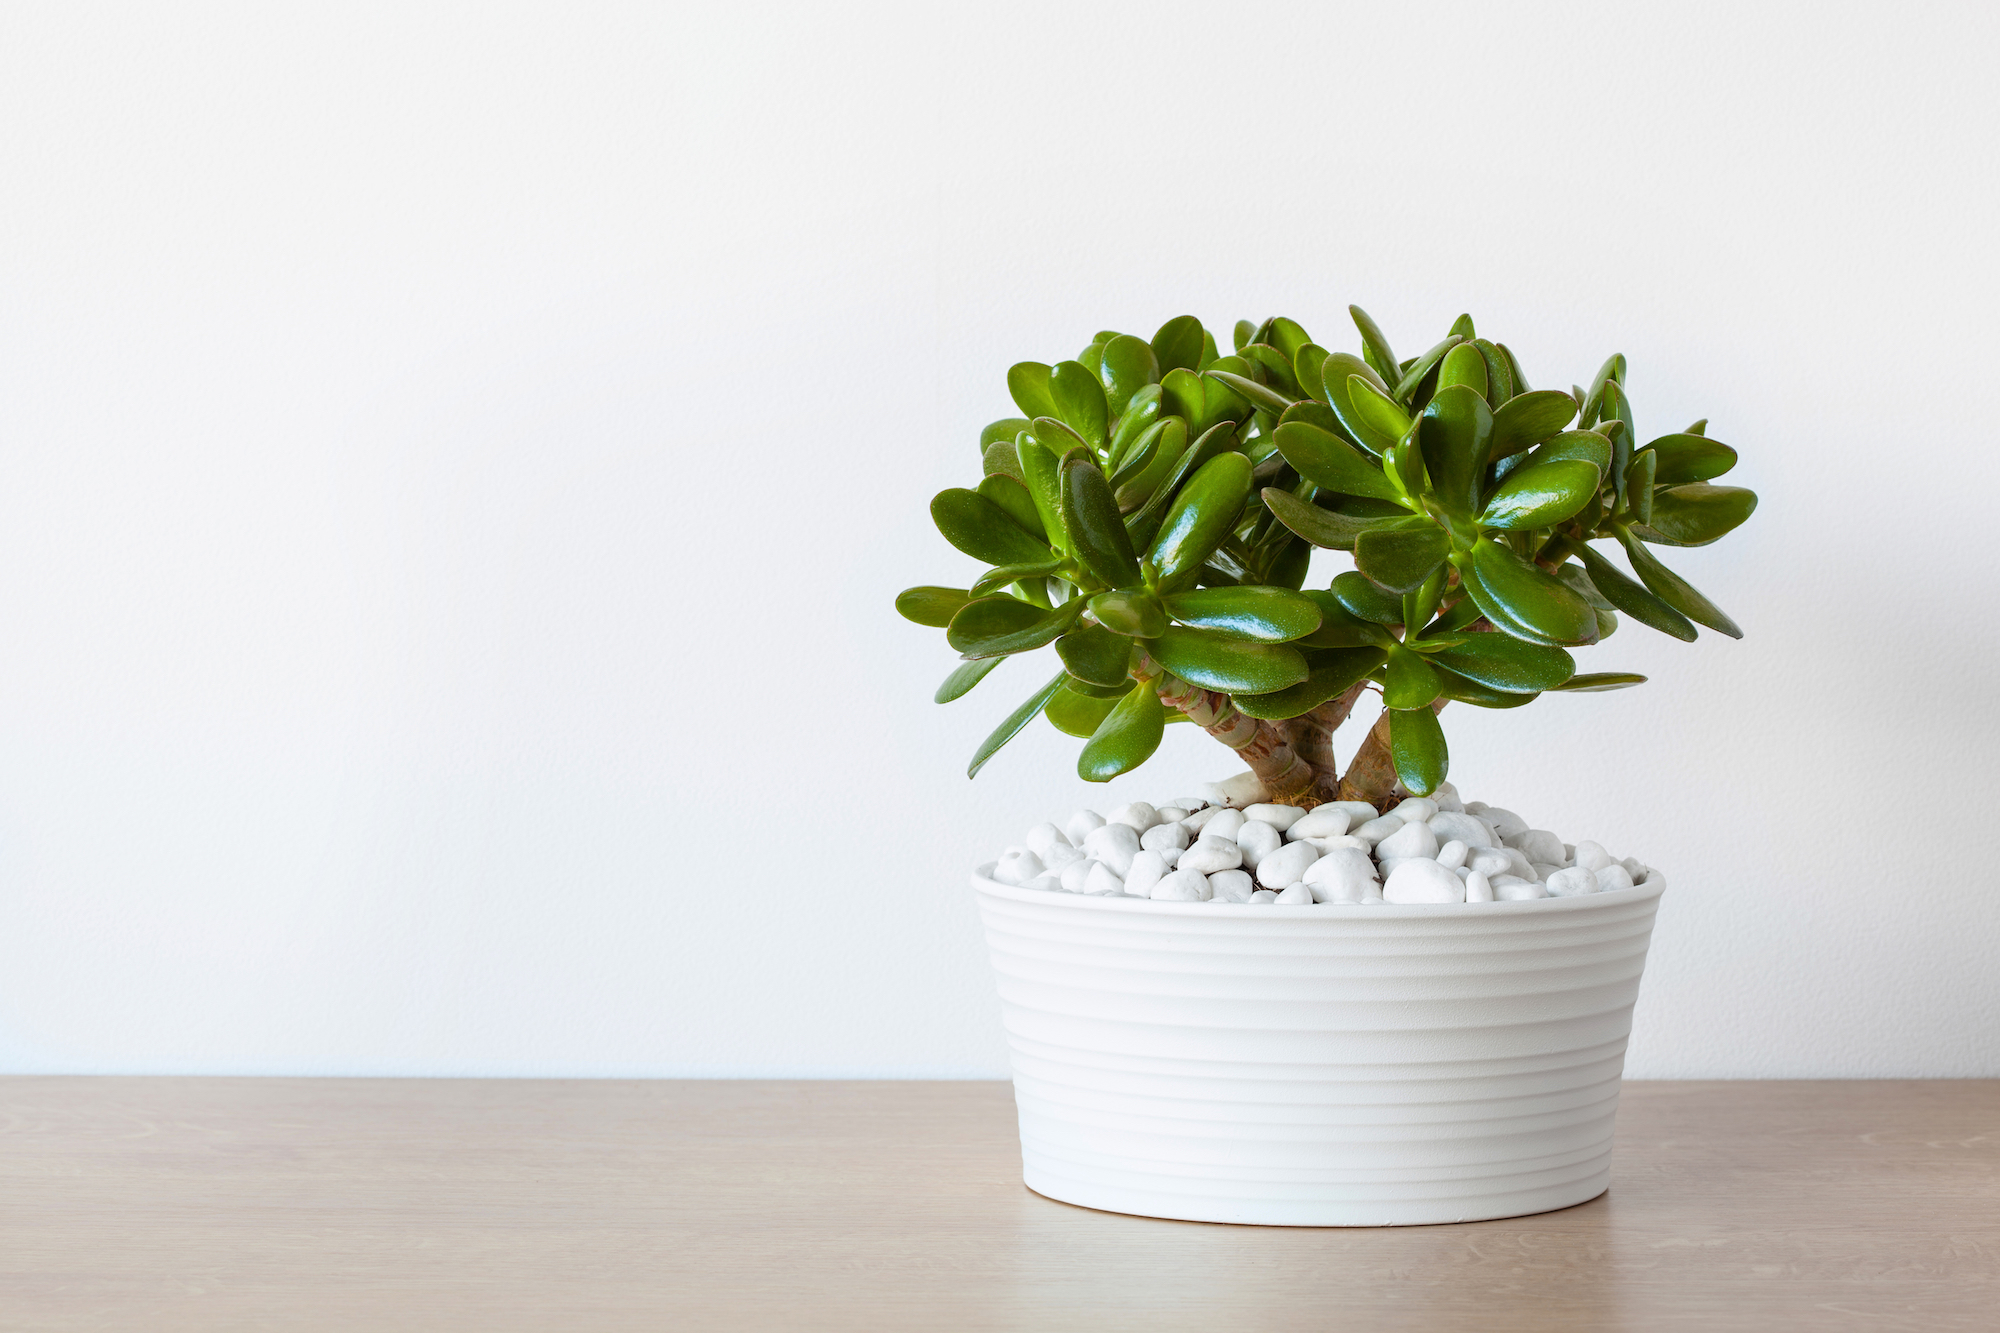 Jade Plant for Indoor Garden